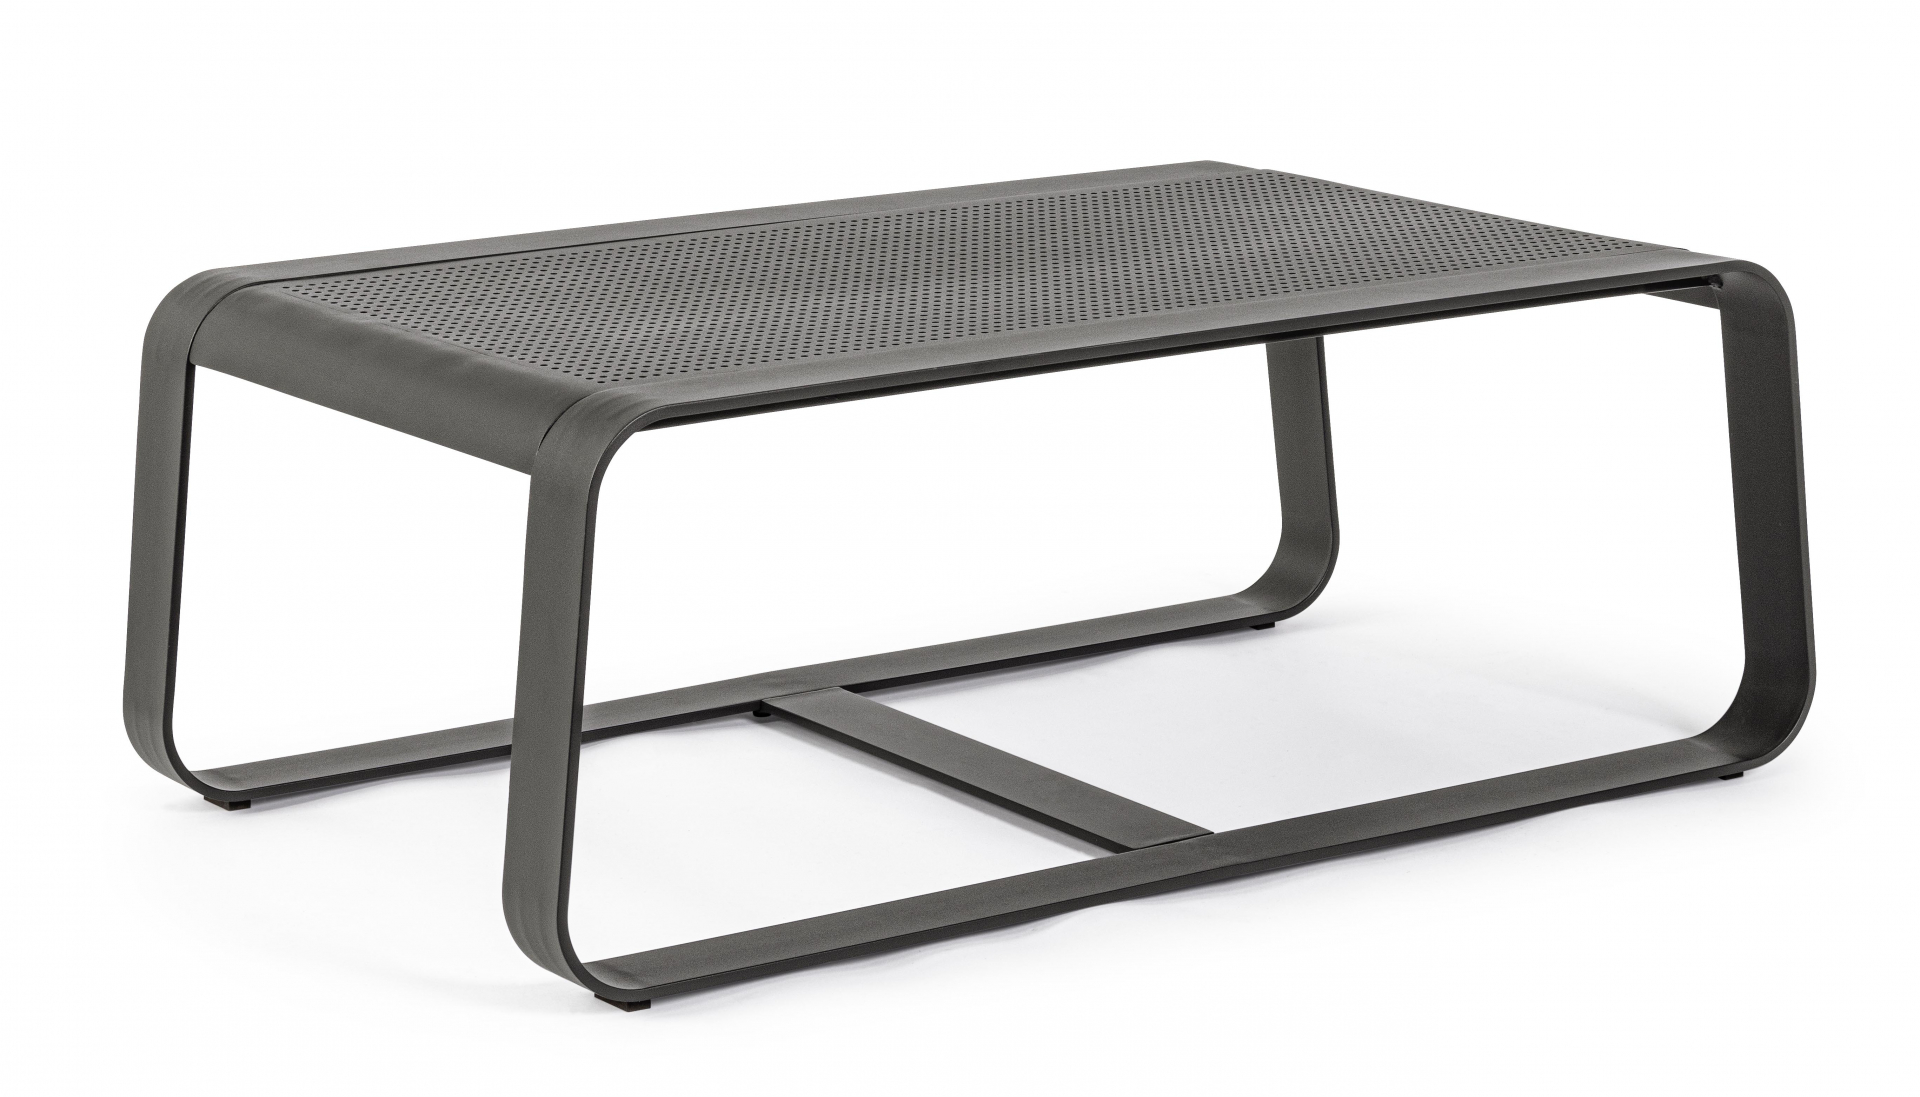 Pop up Home designové stoly Merrigan Table